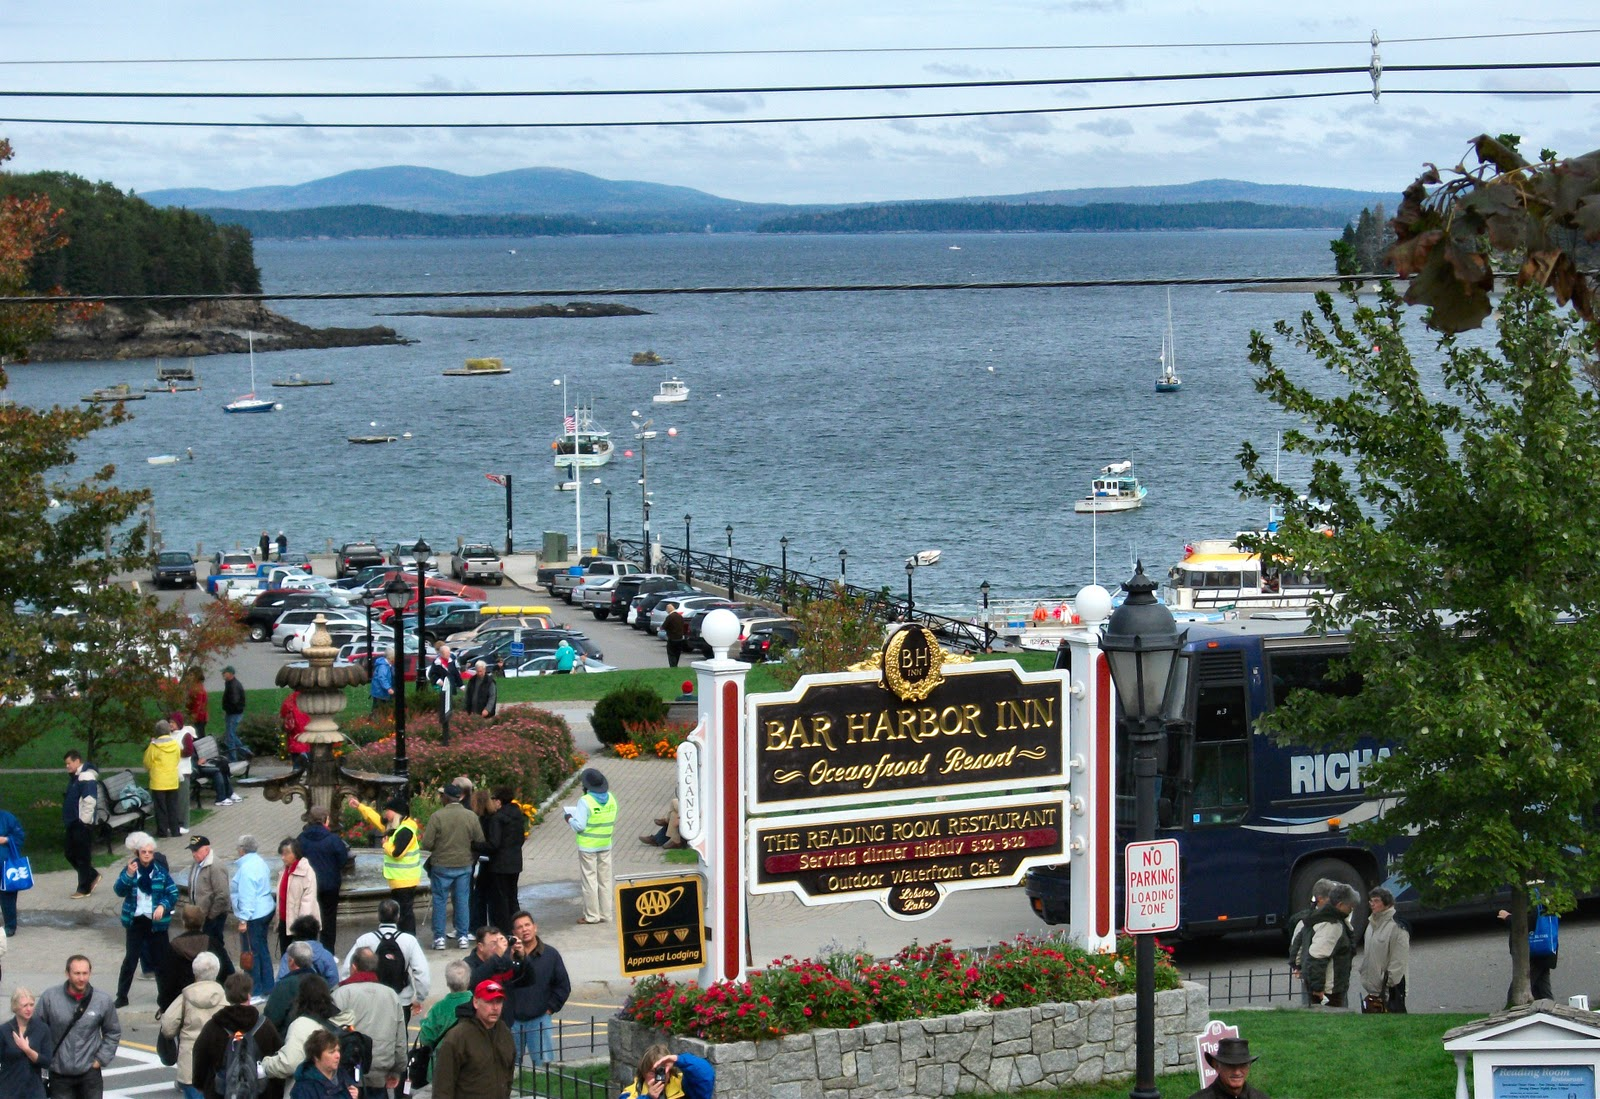 Christopher Setterlund, In My Footsteps: In My Footsteps: Trip 90: Bar Harbor, Maine